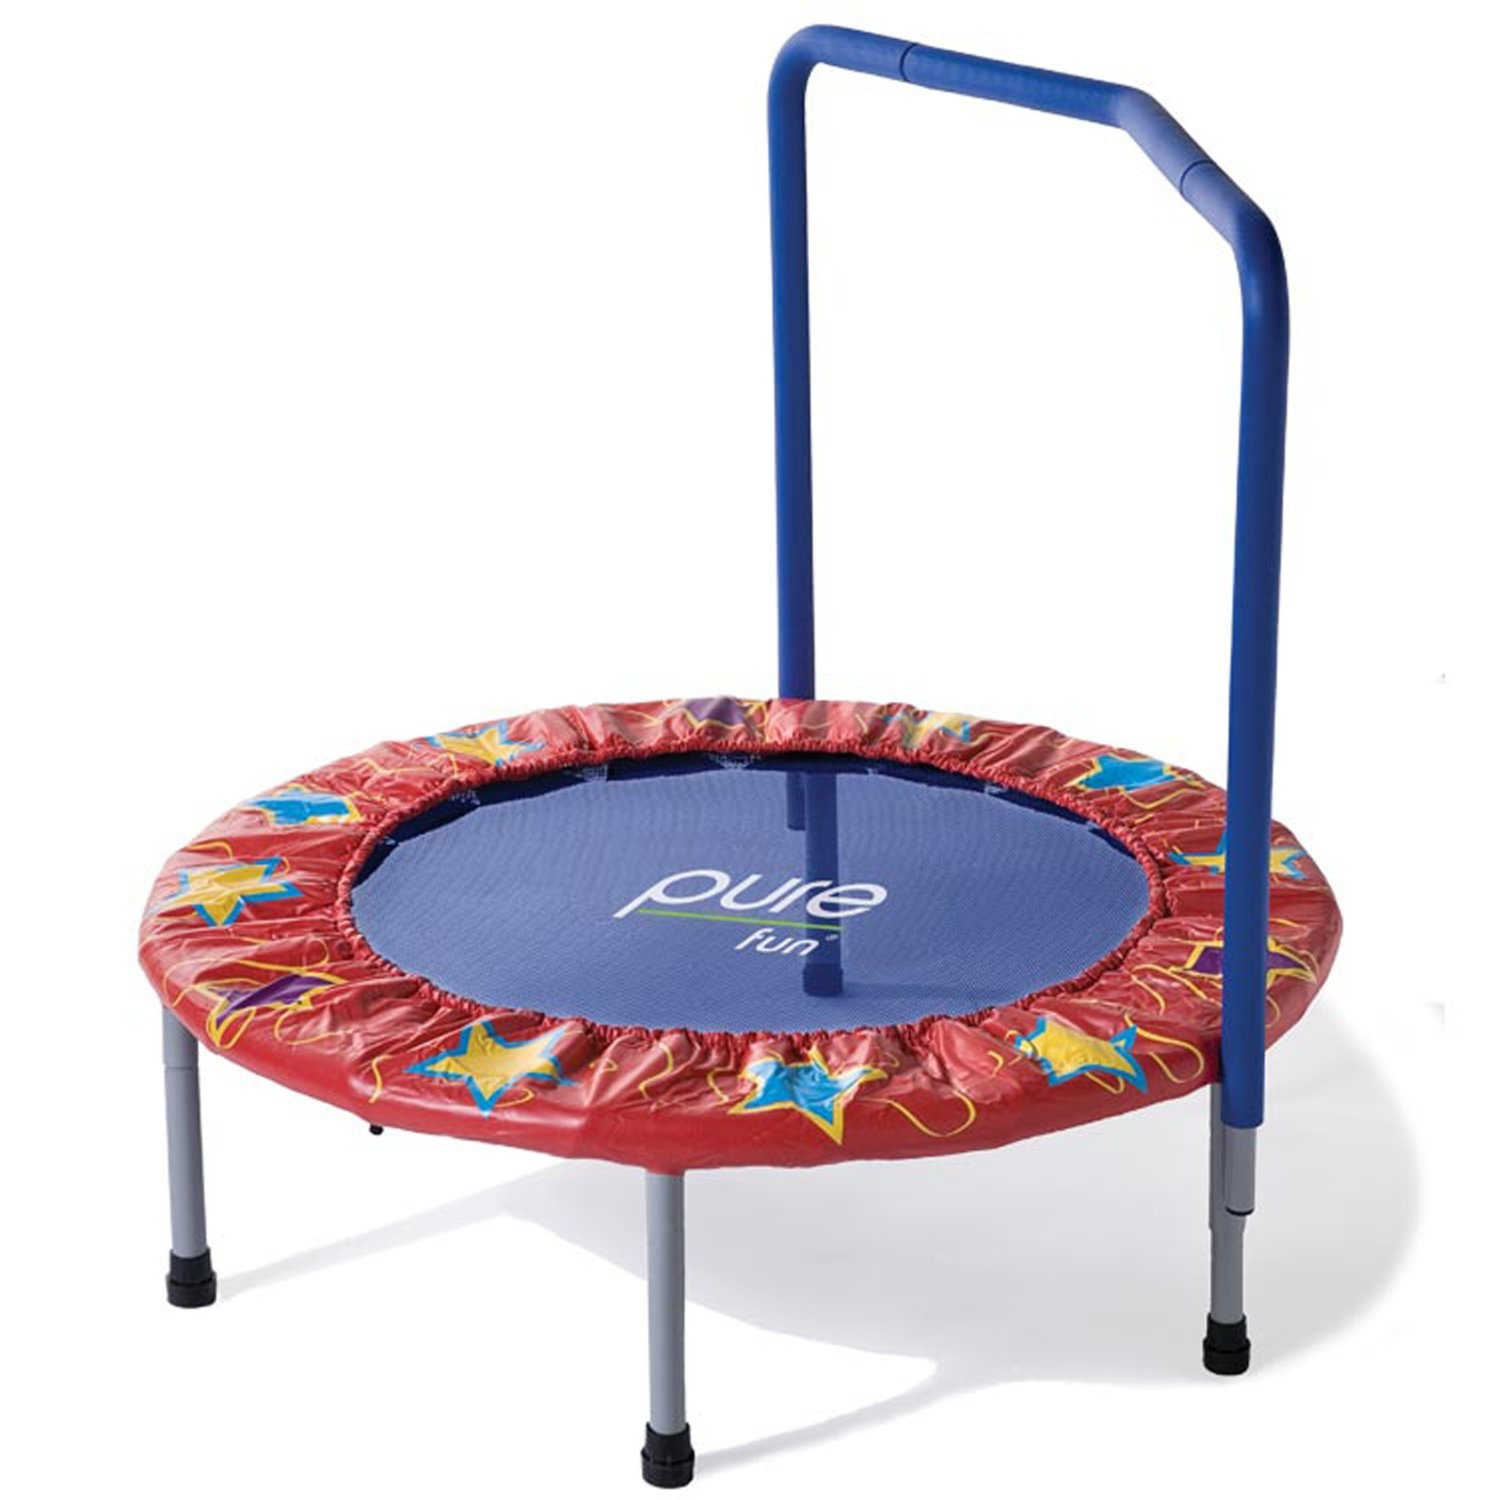 Pure Global Brands Pure Fun Kids Mini Trampoline (Multicolored, 36-Inch) at Sears.com